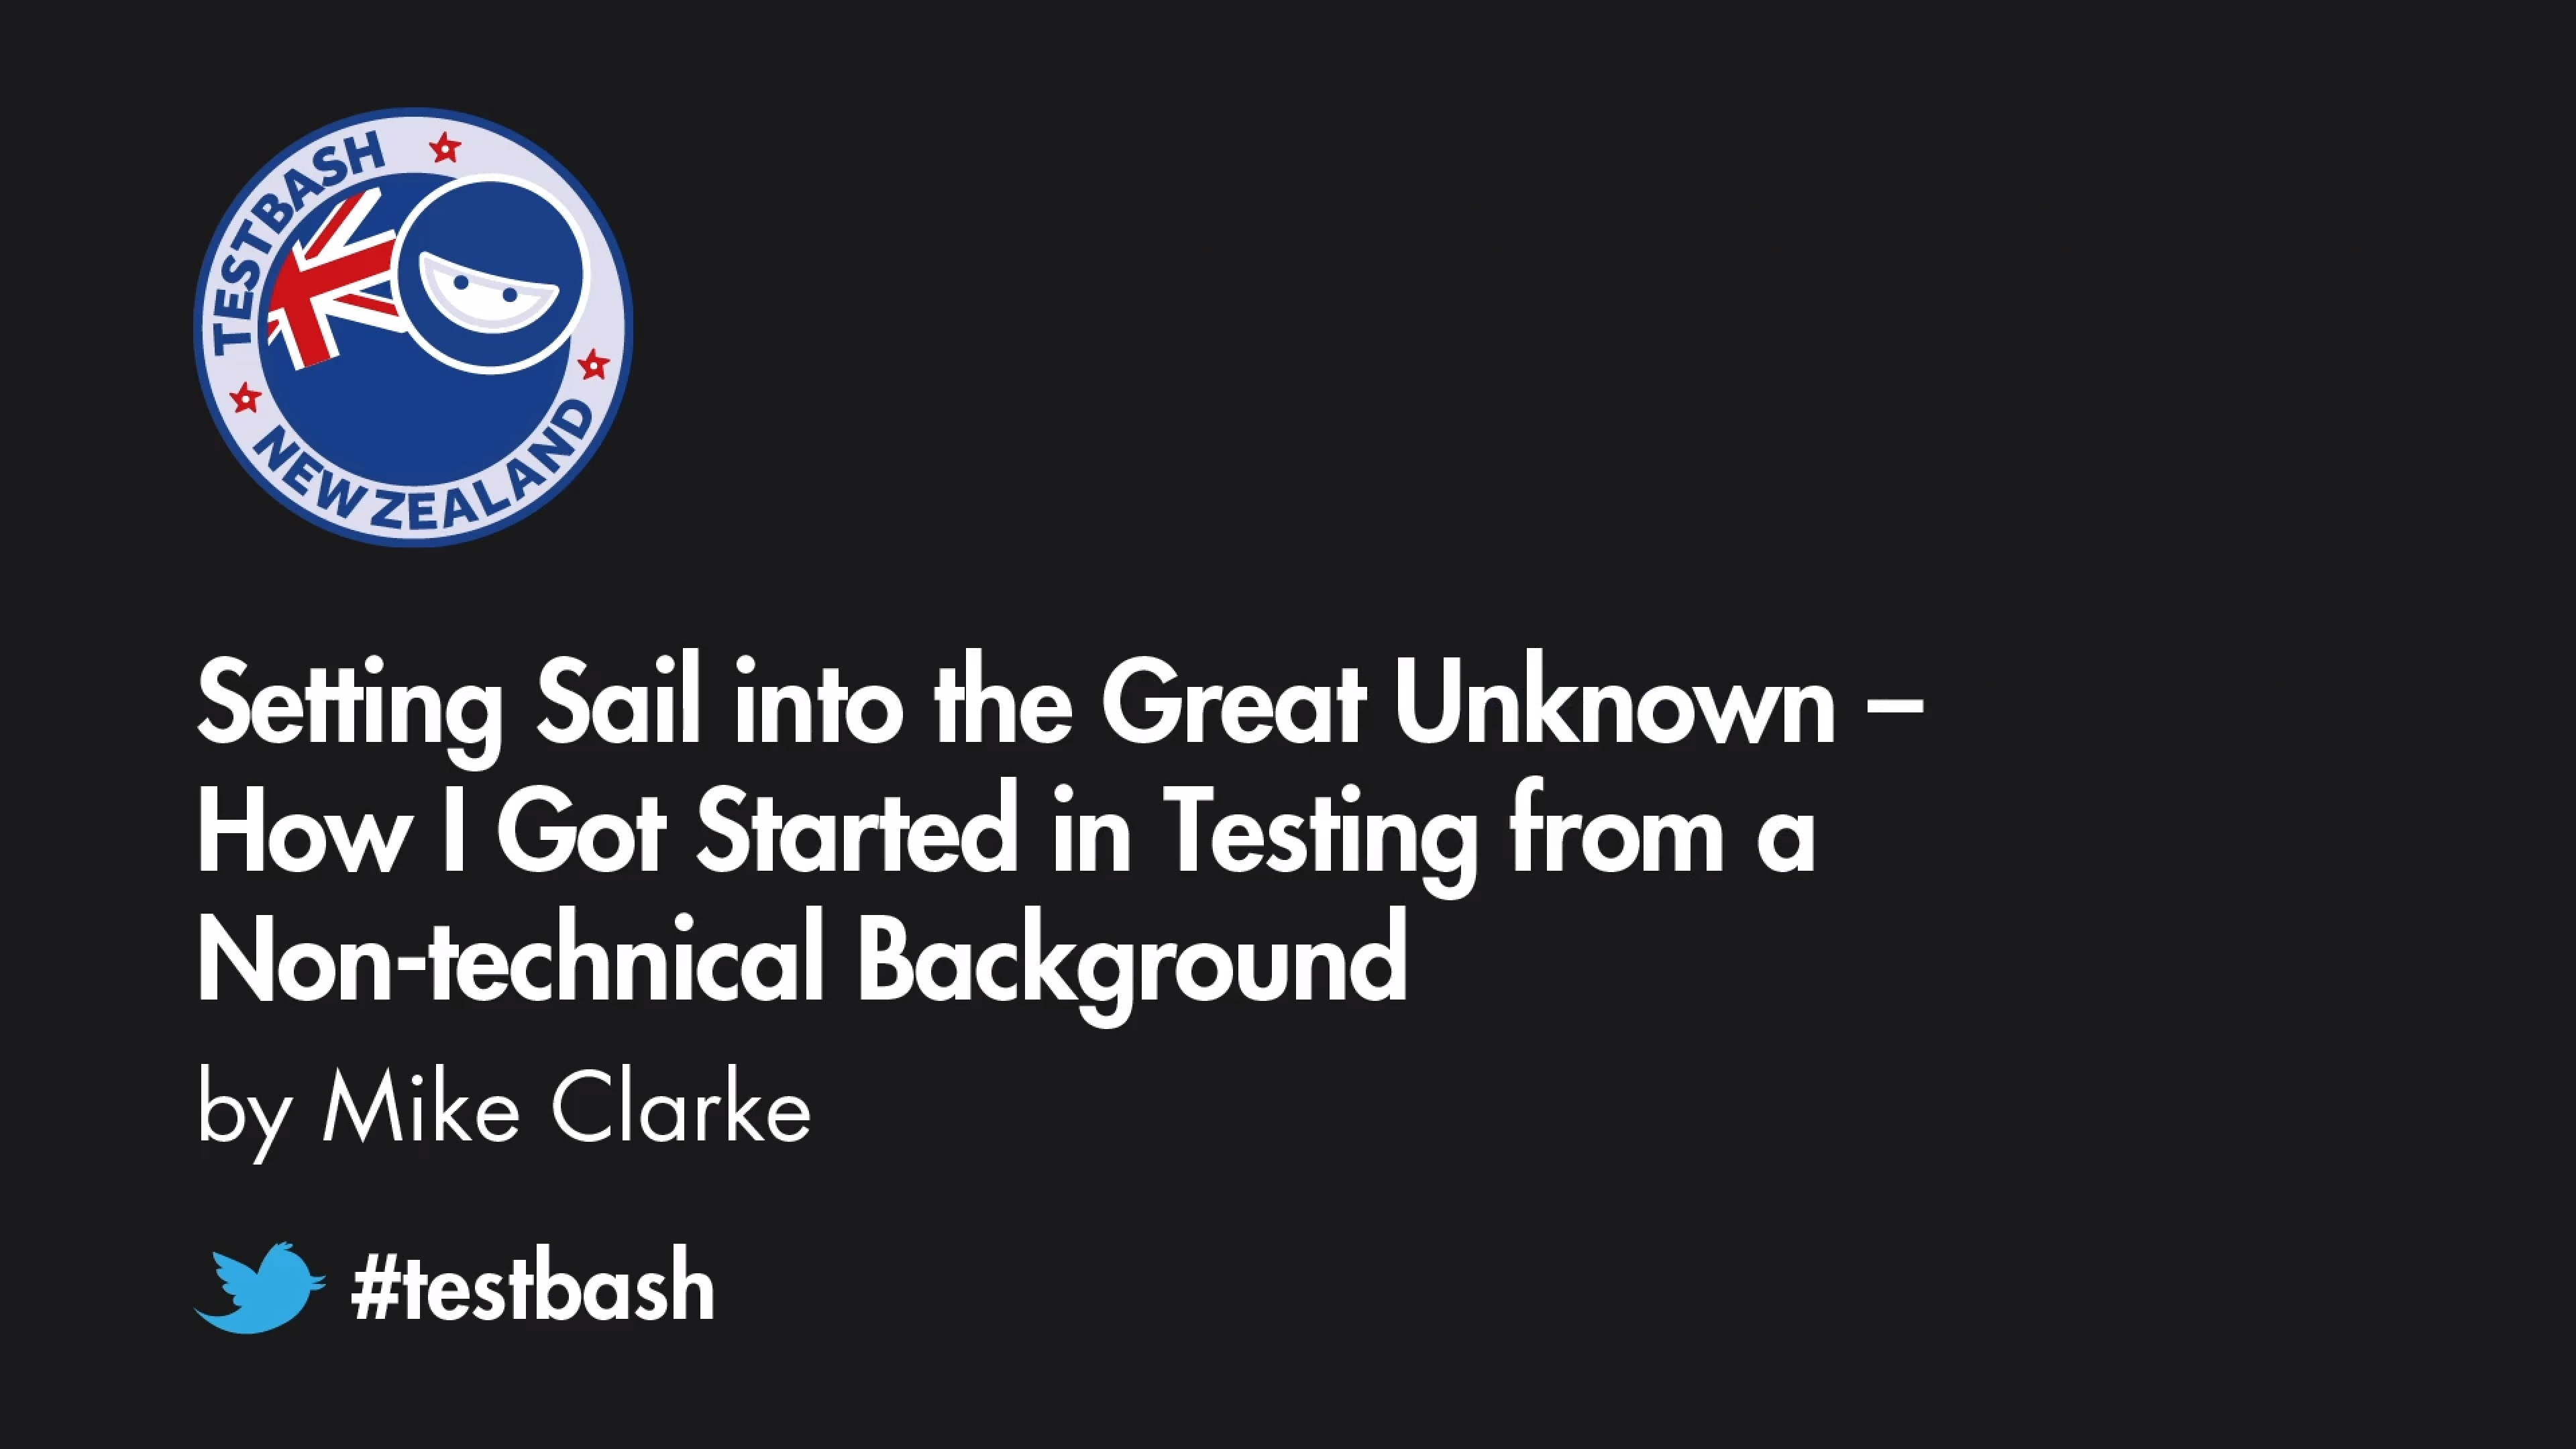 Setting Sail into the Great Unknown: How I Got Started in Testing from a Non-technical Background - Mike Clarke